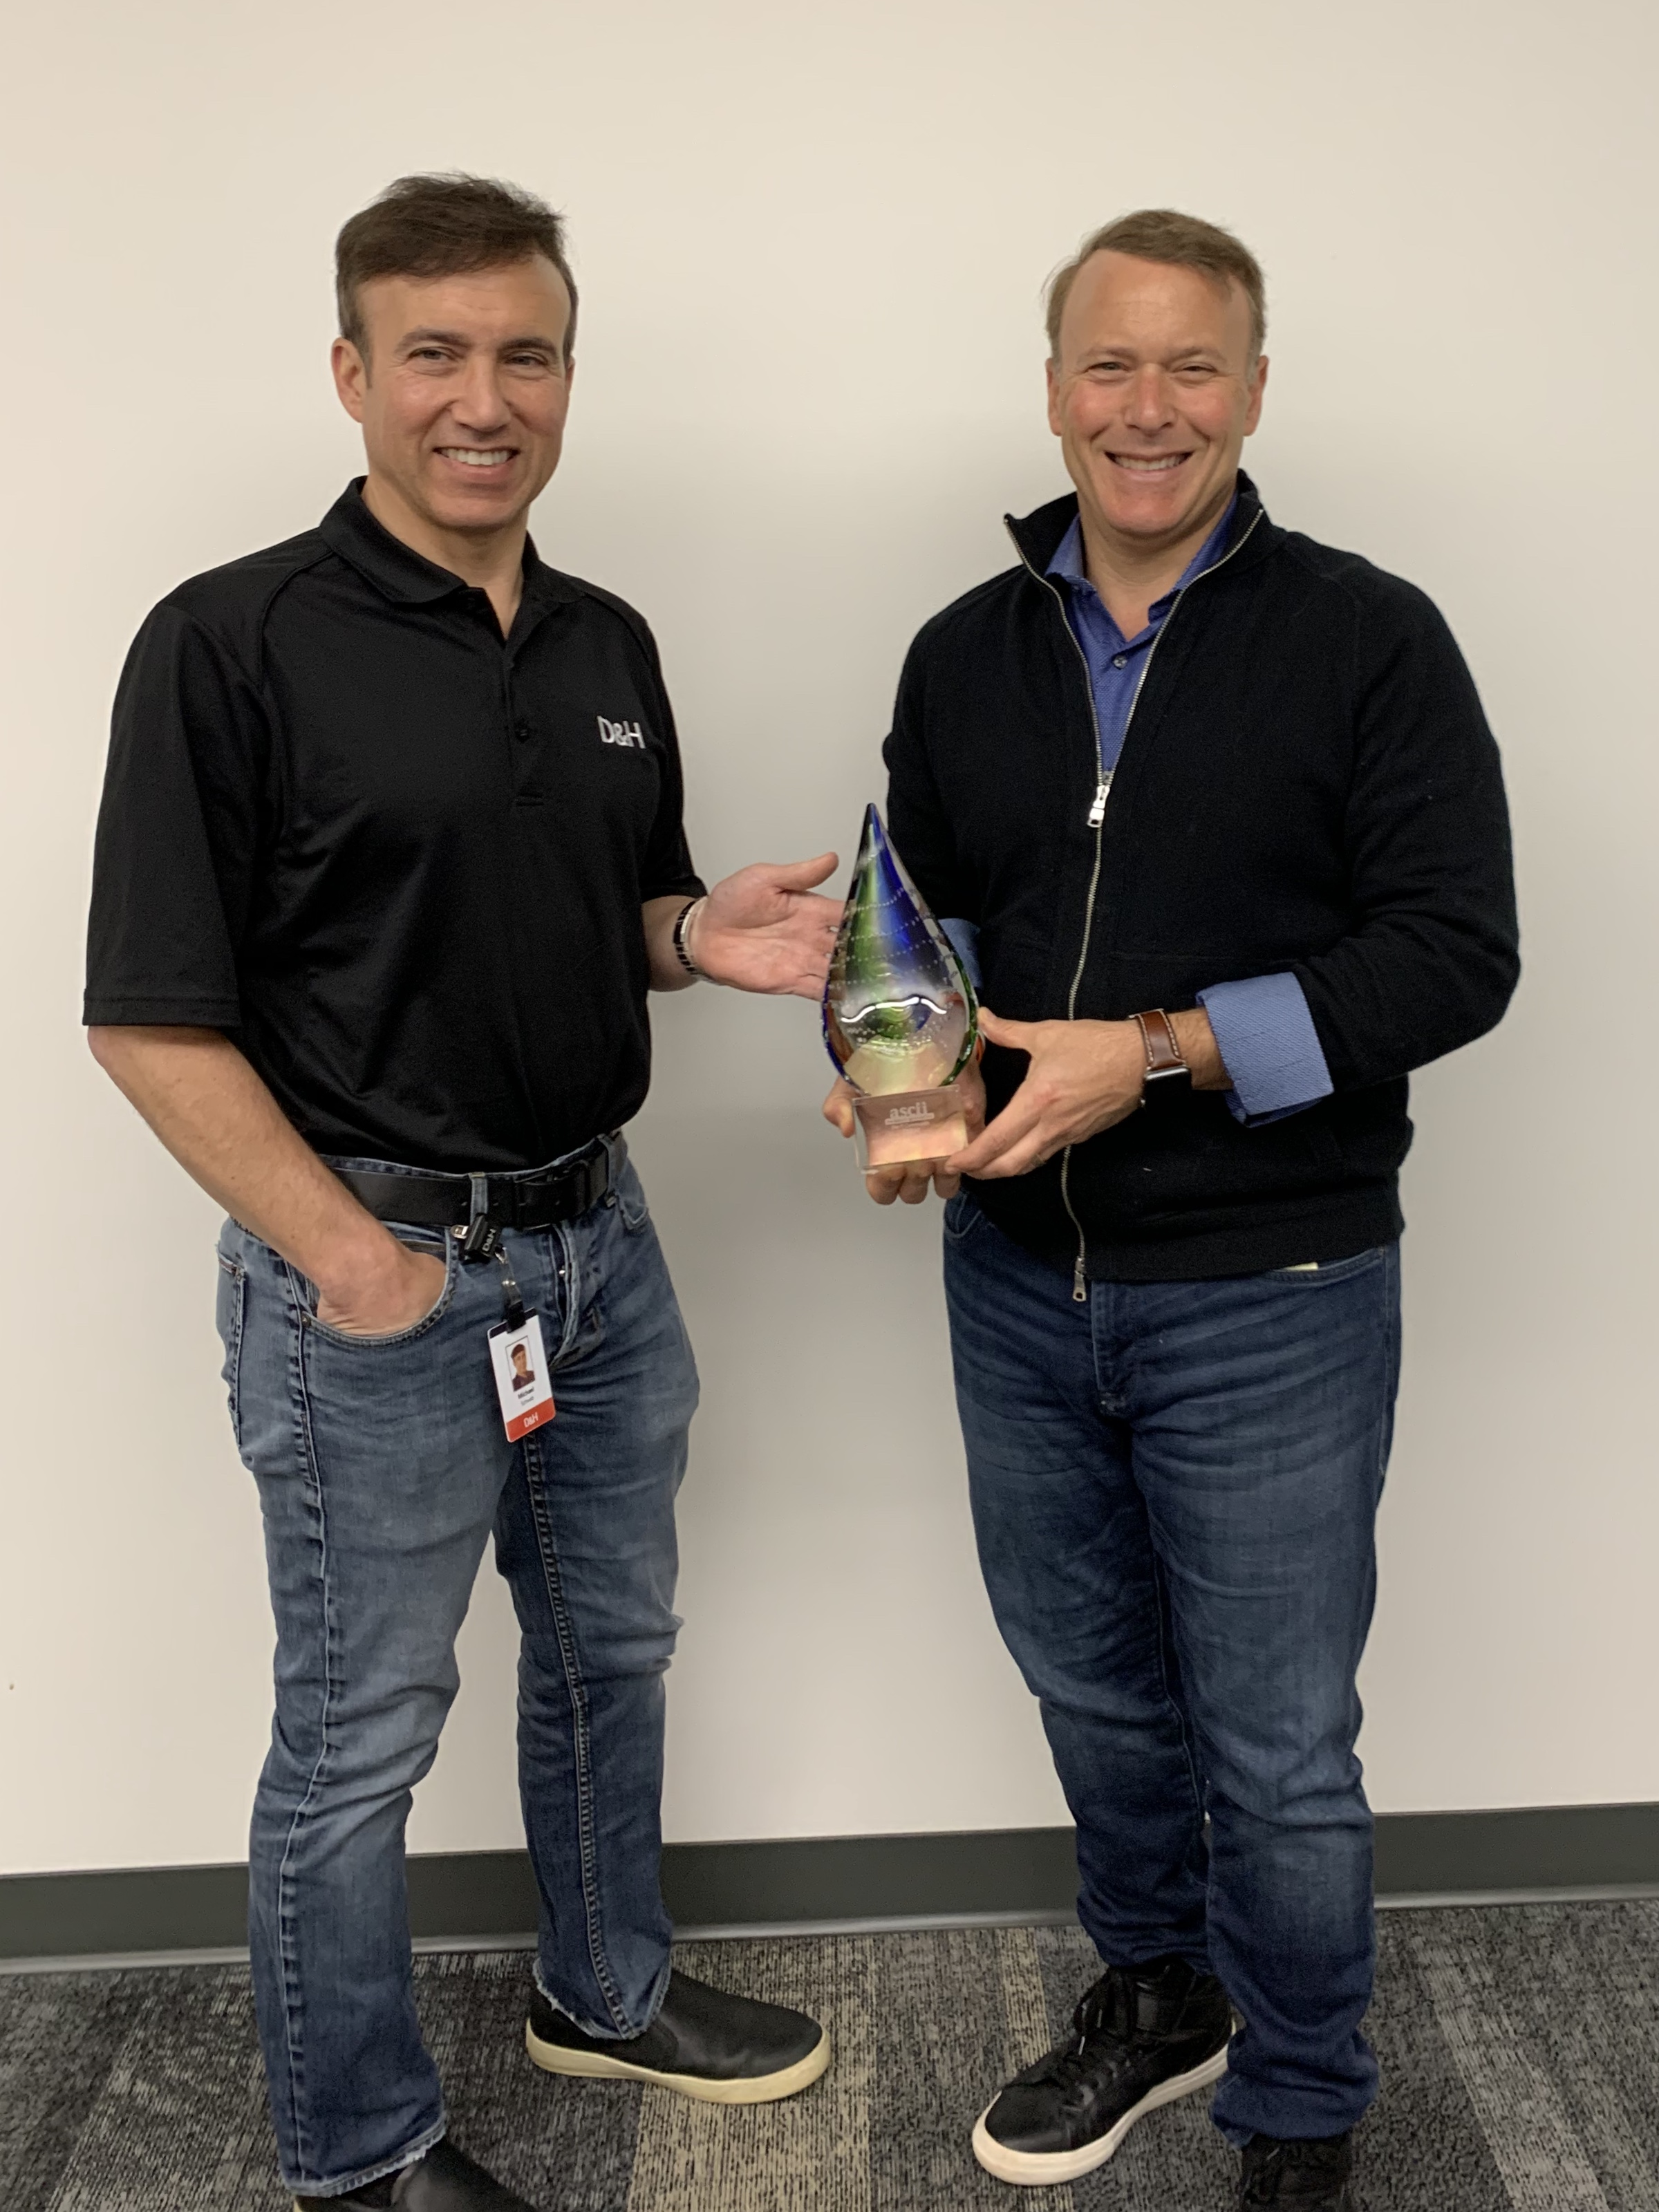 D&H Distributing Co-President Michael Schwab & Co-President Dan Schwab and with the ASCII Top Benchmark Survey Broadline Distributor of 2019 Award